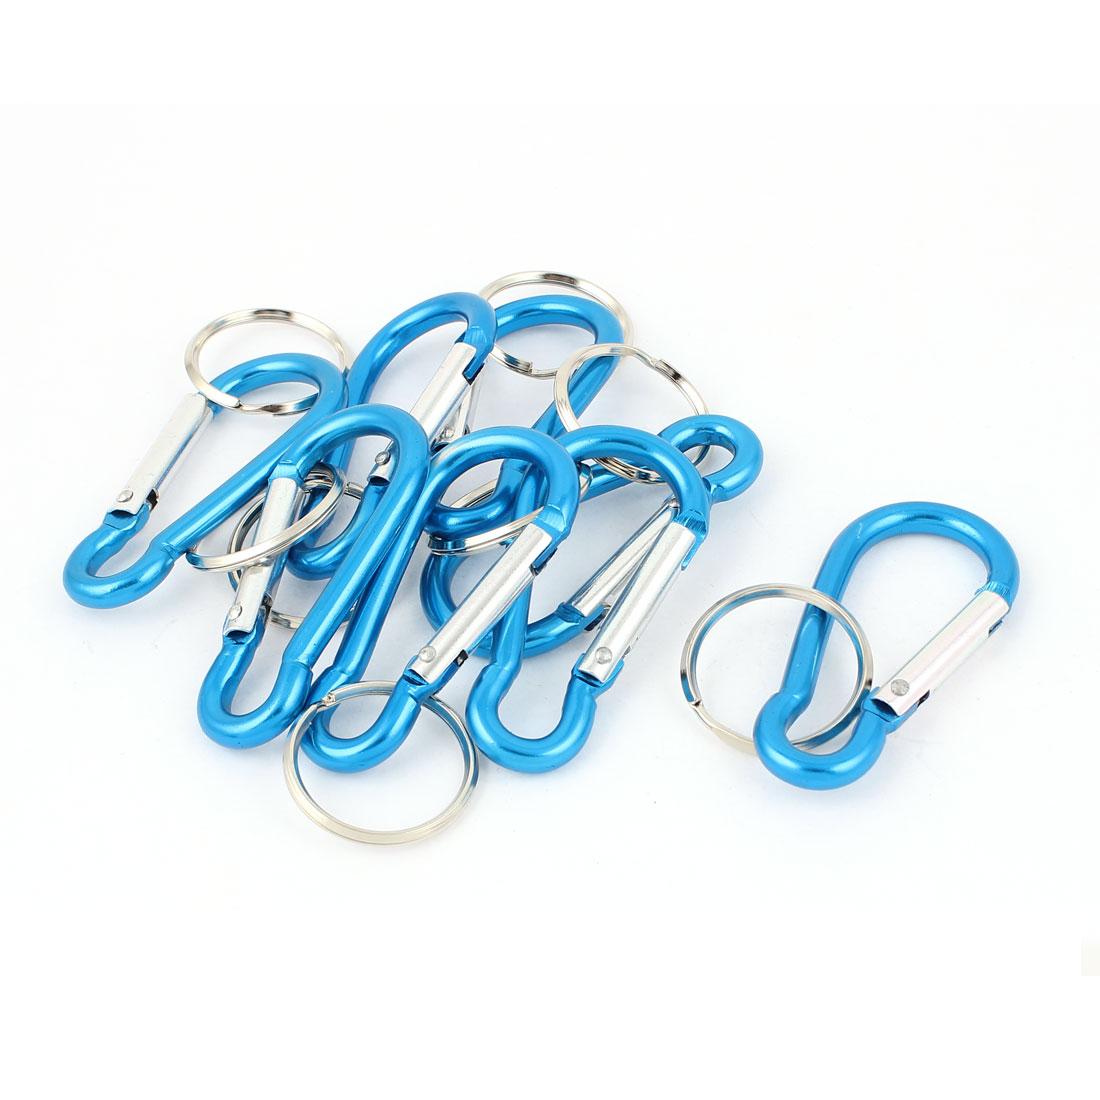 8pcs Blue Metal Carabiner Clips Spring Belt Snap Key Chain Ring Keychain Camping Hook